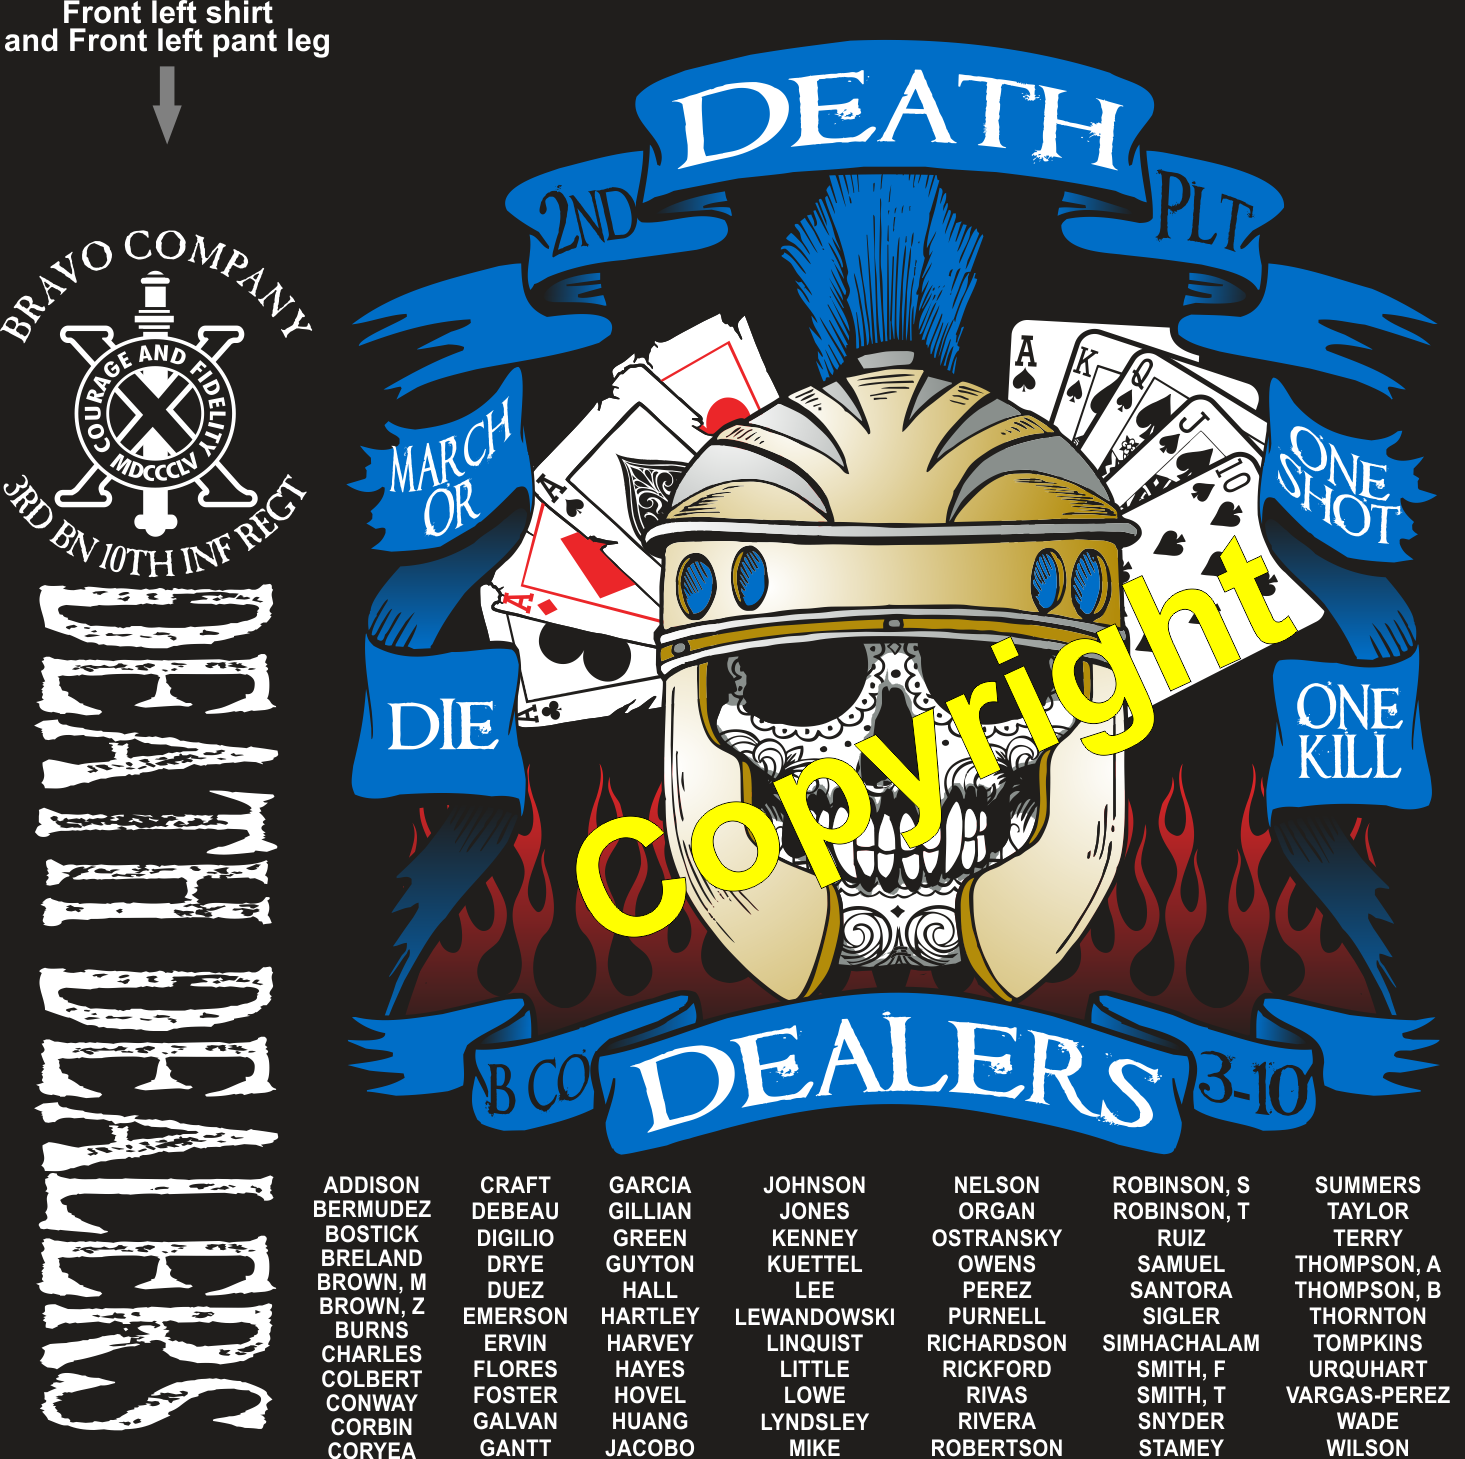 BRAVO 310 DEATH DEALERS GRADUATING DAY 11-1-2018 digital